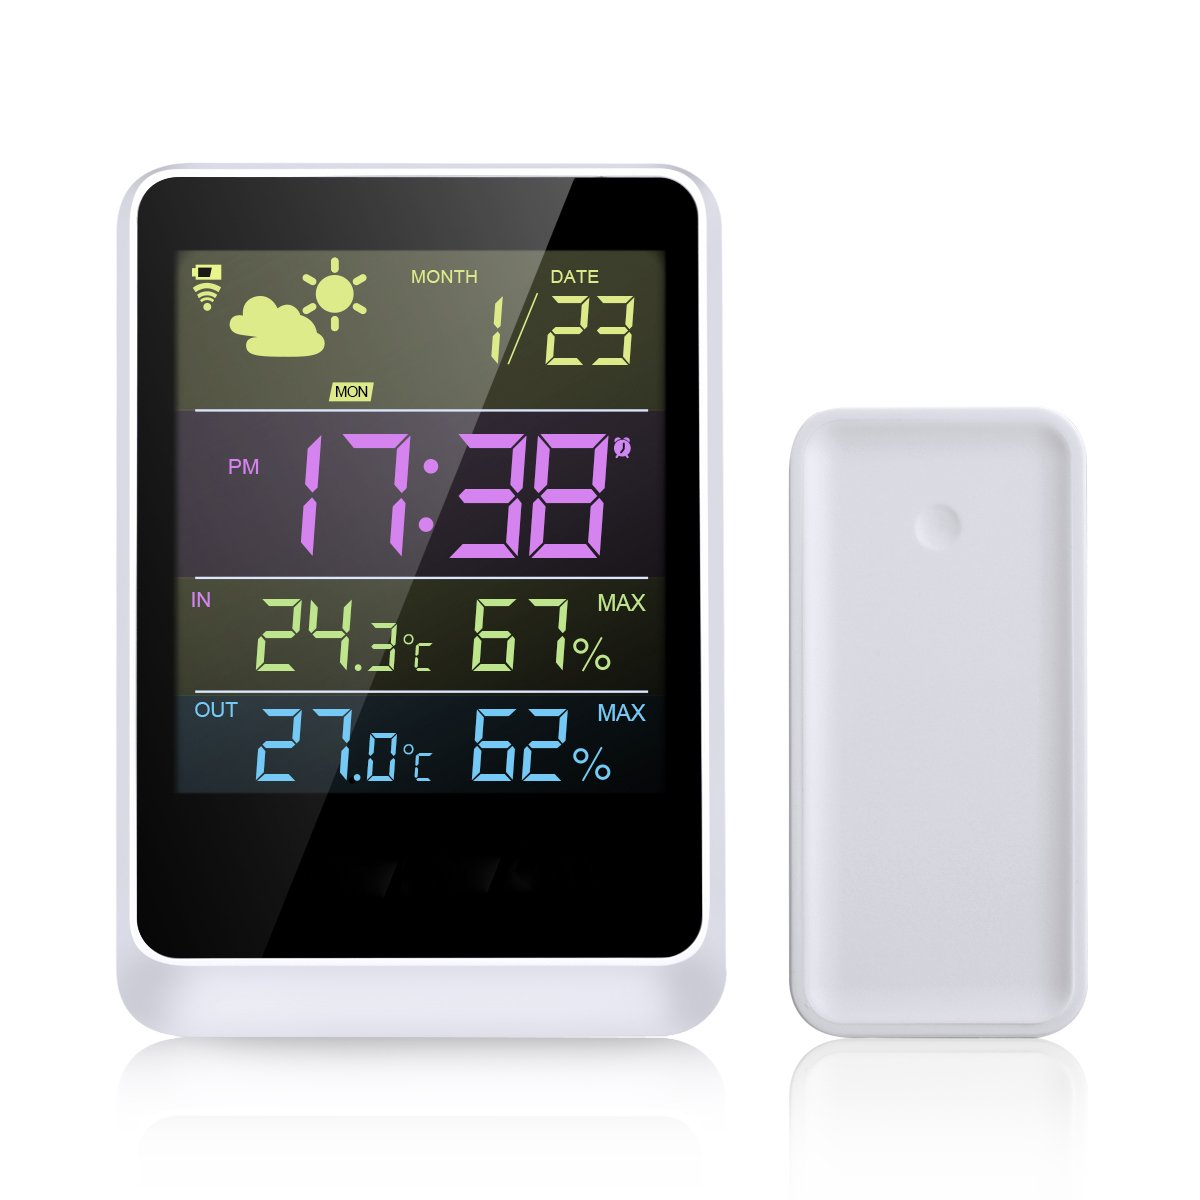 WELQUIC Wireless Weather Forecast Station and Outdoor Remote Sensor Forecasts Temperature and Relative Humidity Displays Data in Full-Color LCD Screen Features Date & Time 100ft/30m Range